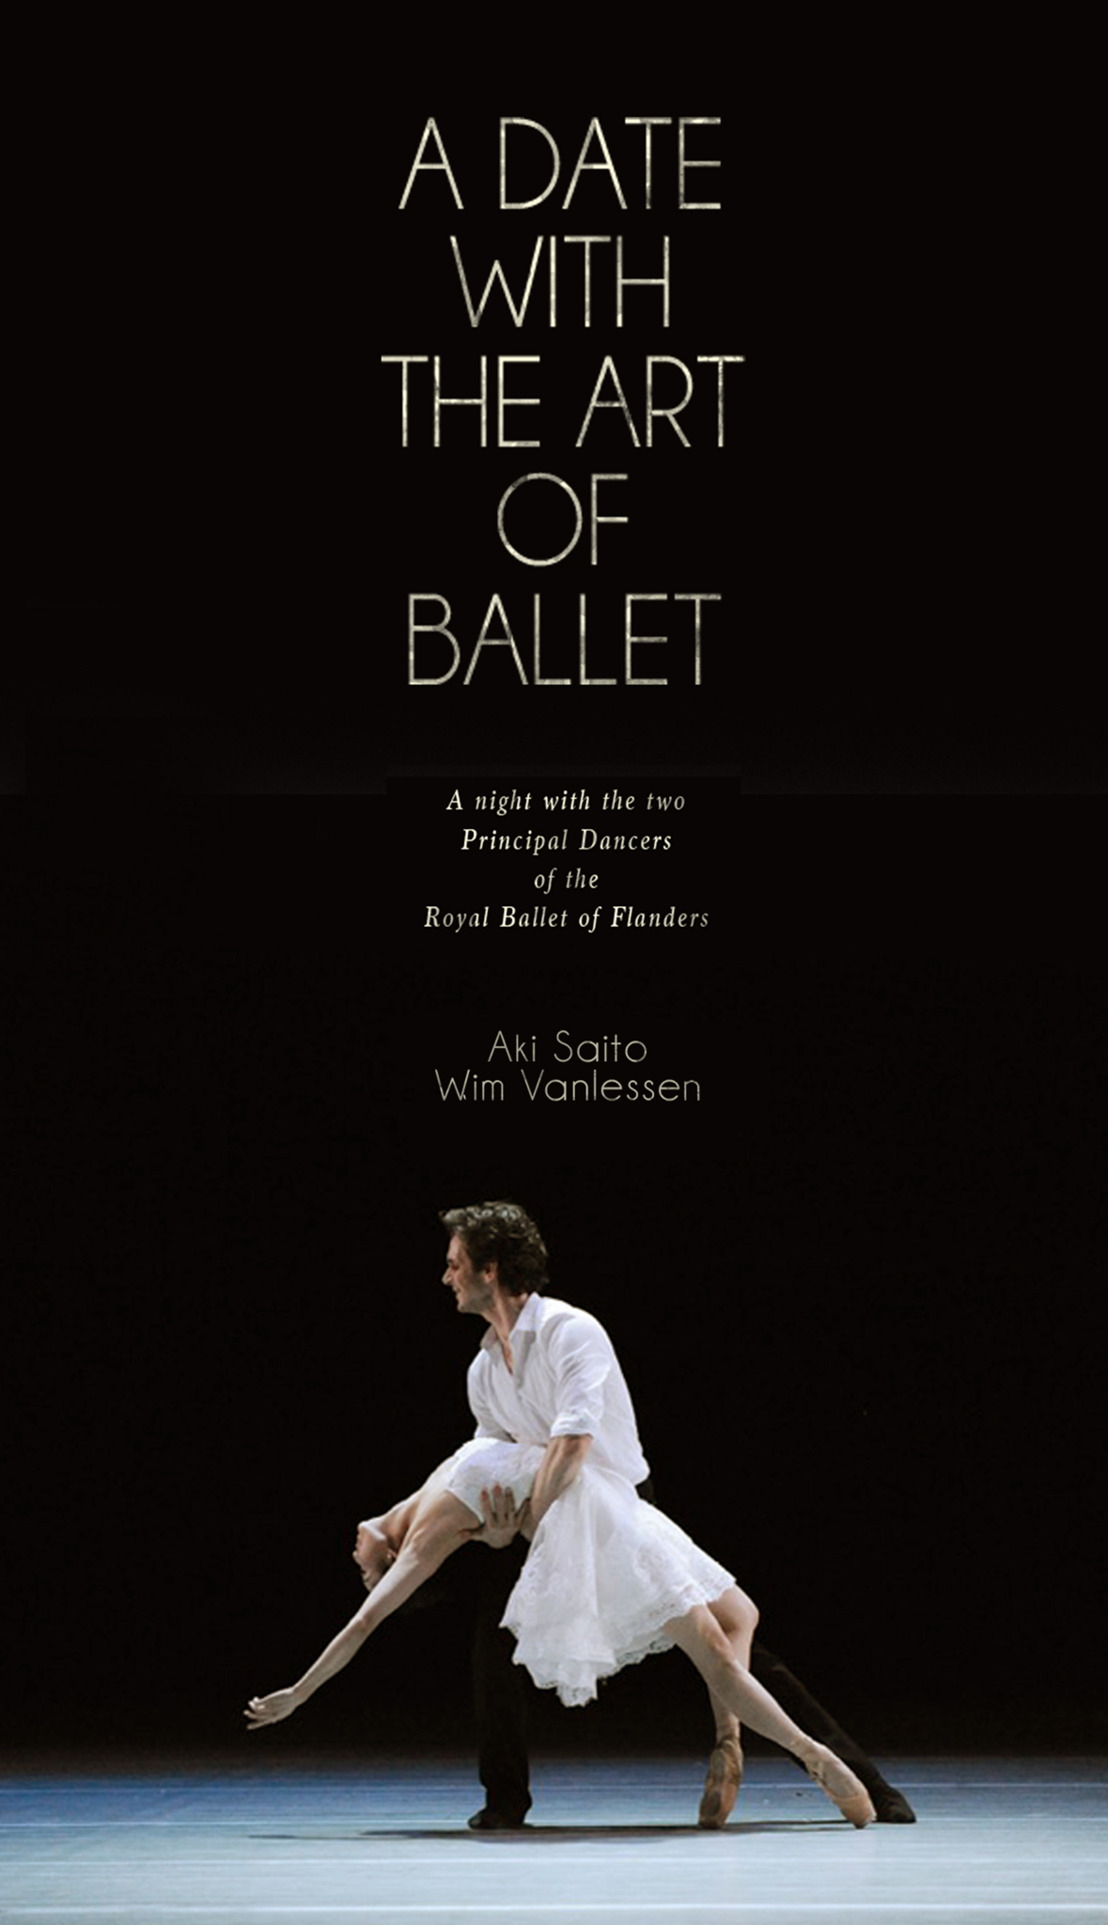 Fosbury & Sons stelt voor: 'A Date with The Art of Ballet'